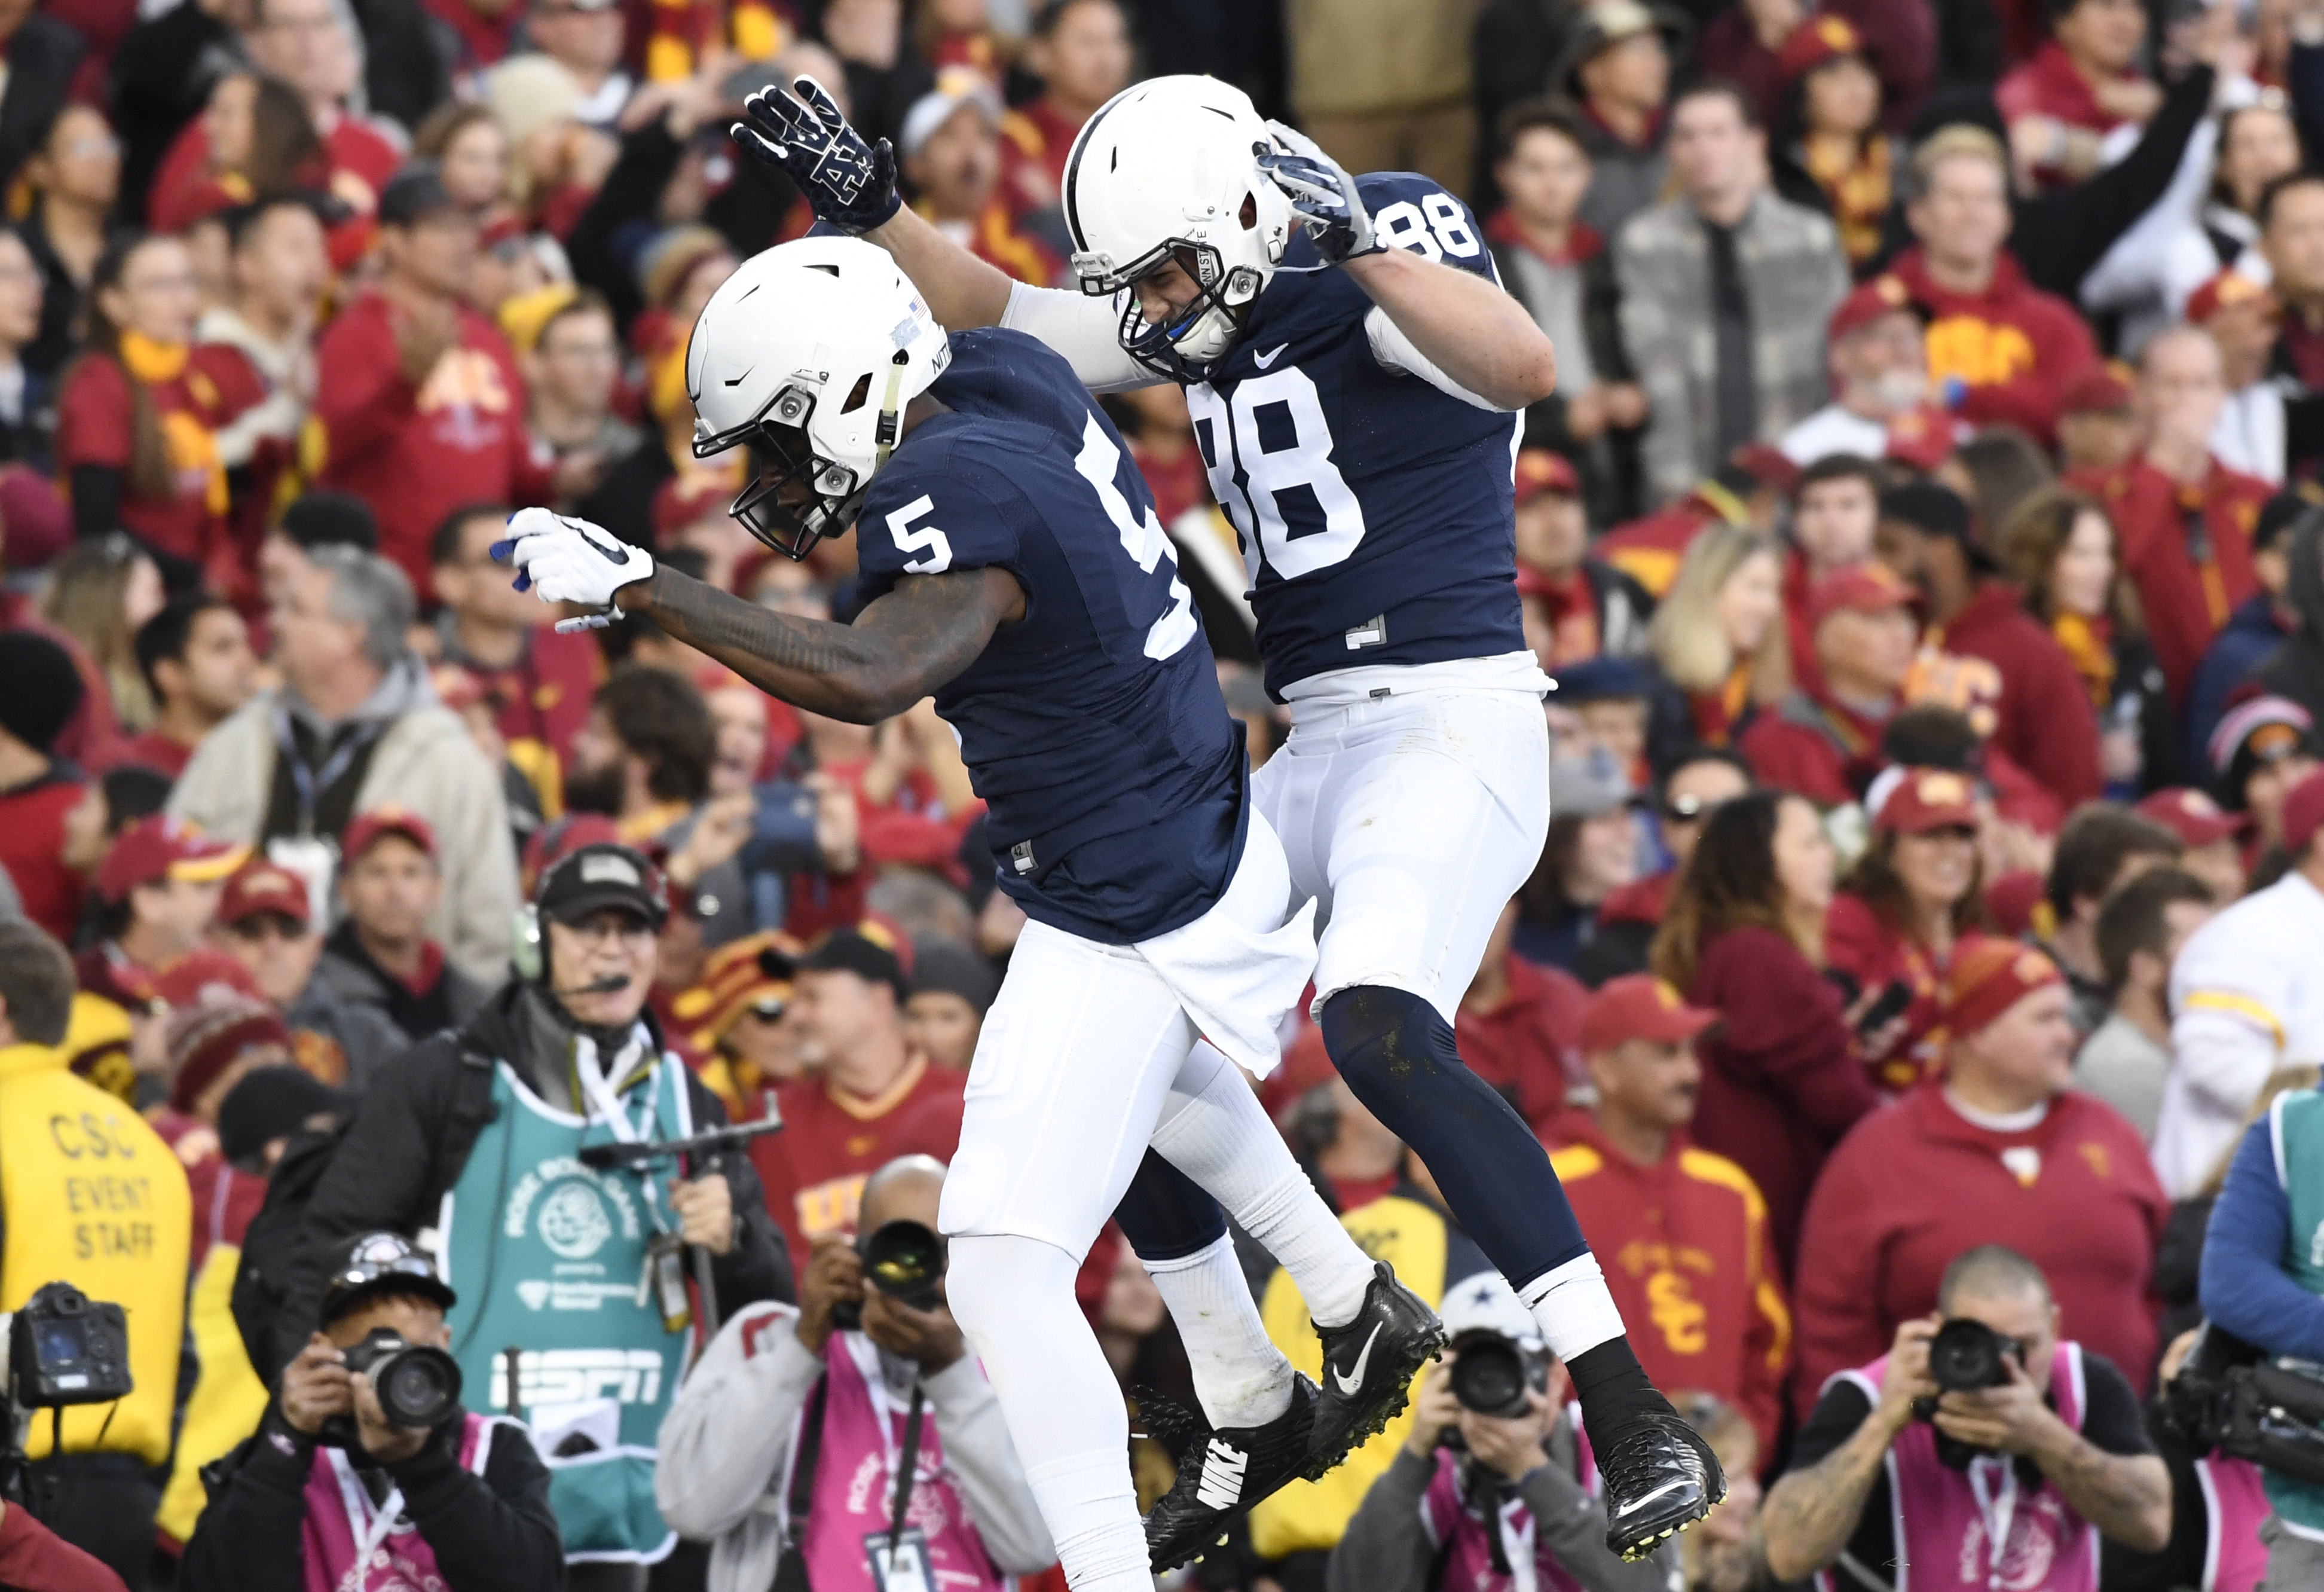 9784737-ncaa-football-rose-bowl-game-penn-state-vs-southern-california